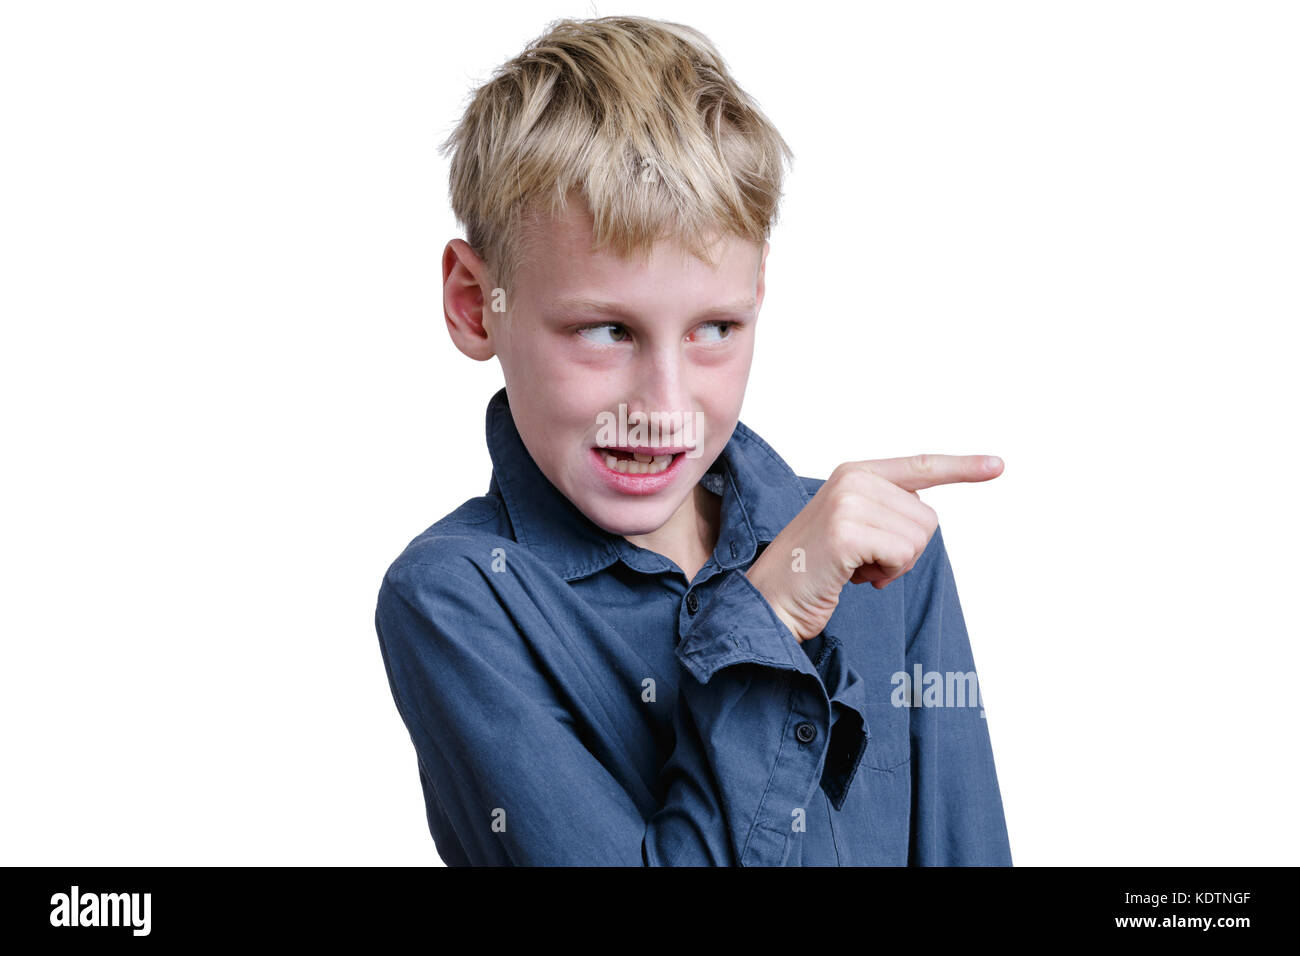 10-years old boy pointing on somebody. - Stock Image